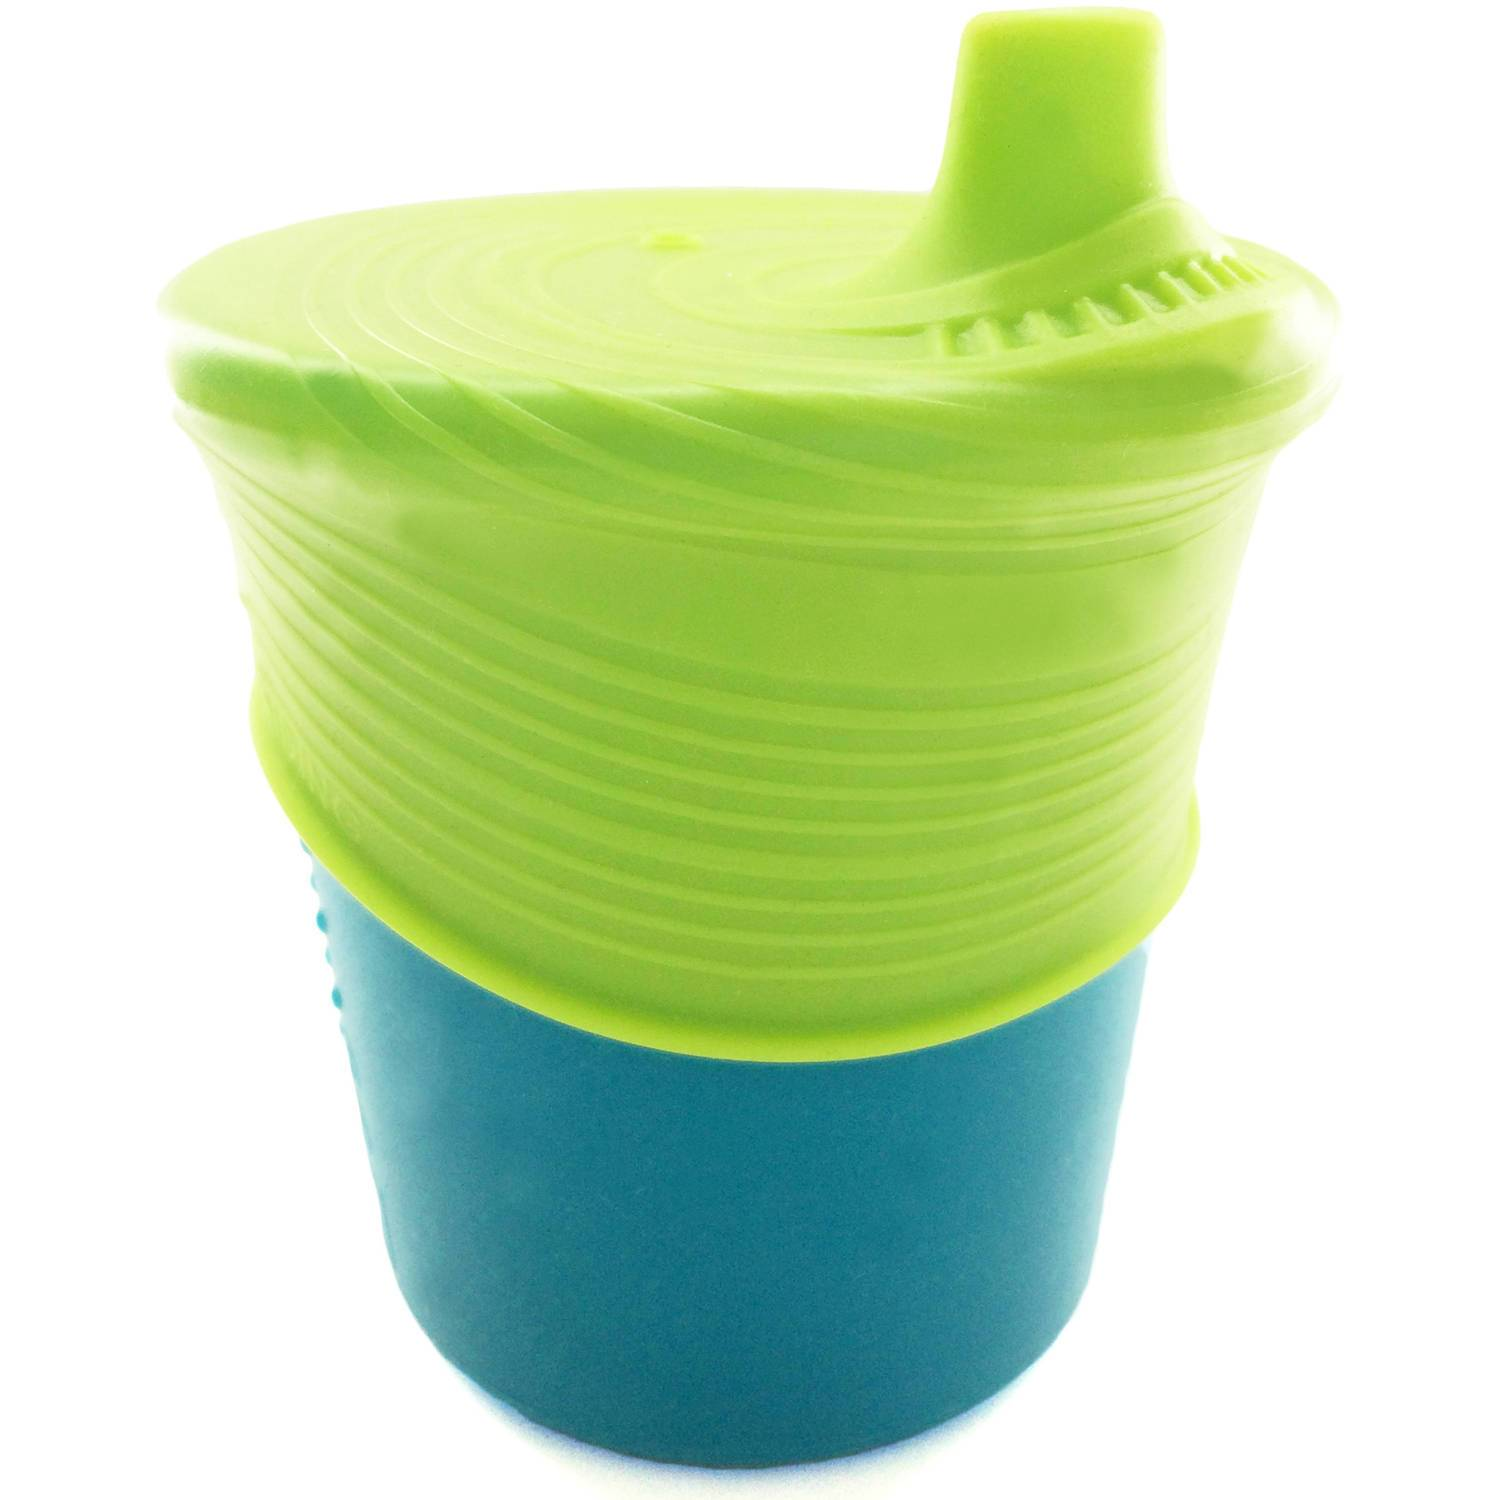 GoSili 8 oz Universal Sippy Cup - Lime/Teal